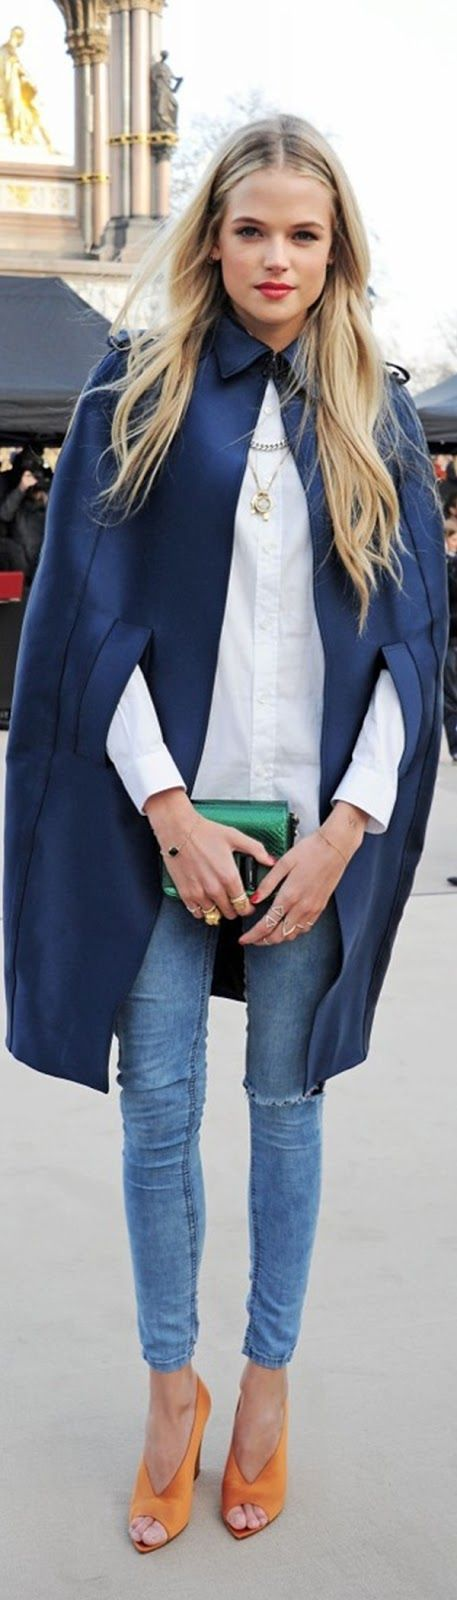 Winter trends: Capes are hot this year 15 ways to wear them